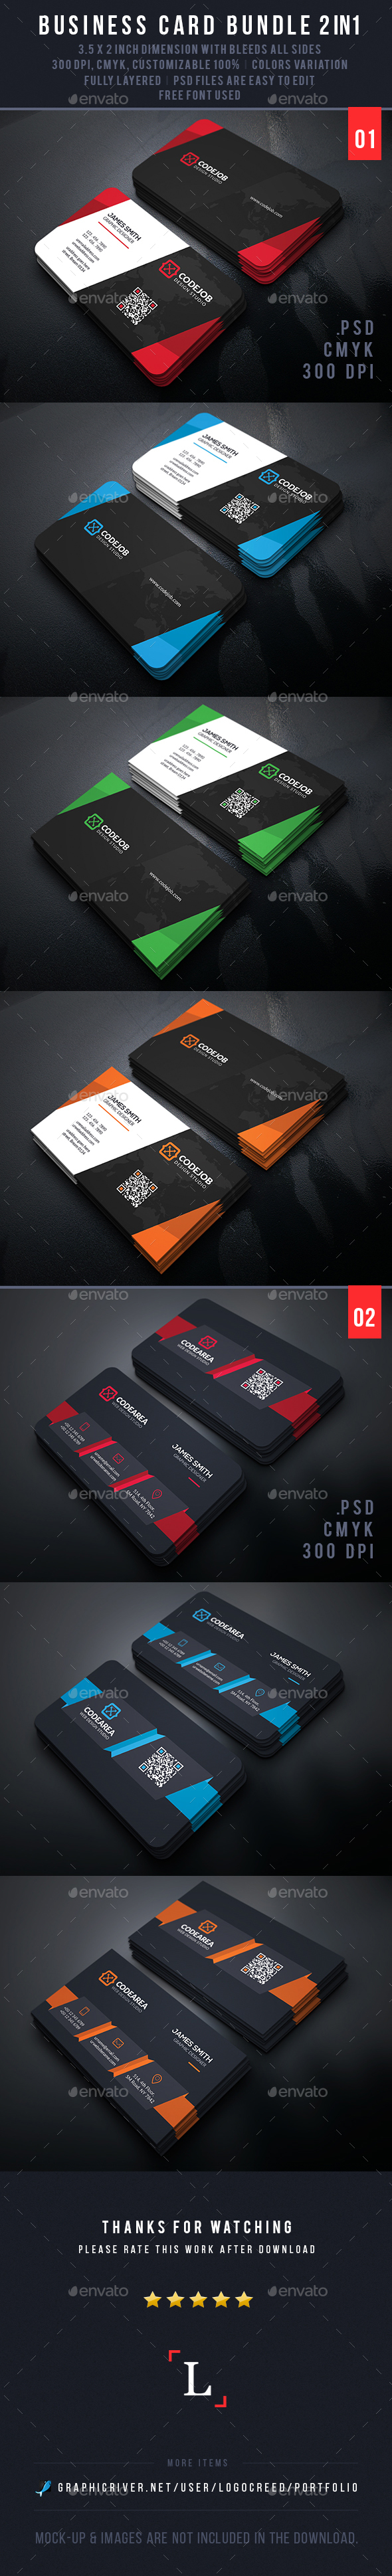 Design Business Card Bundle - Business Cards Print Templates